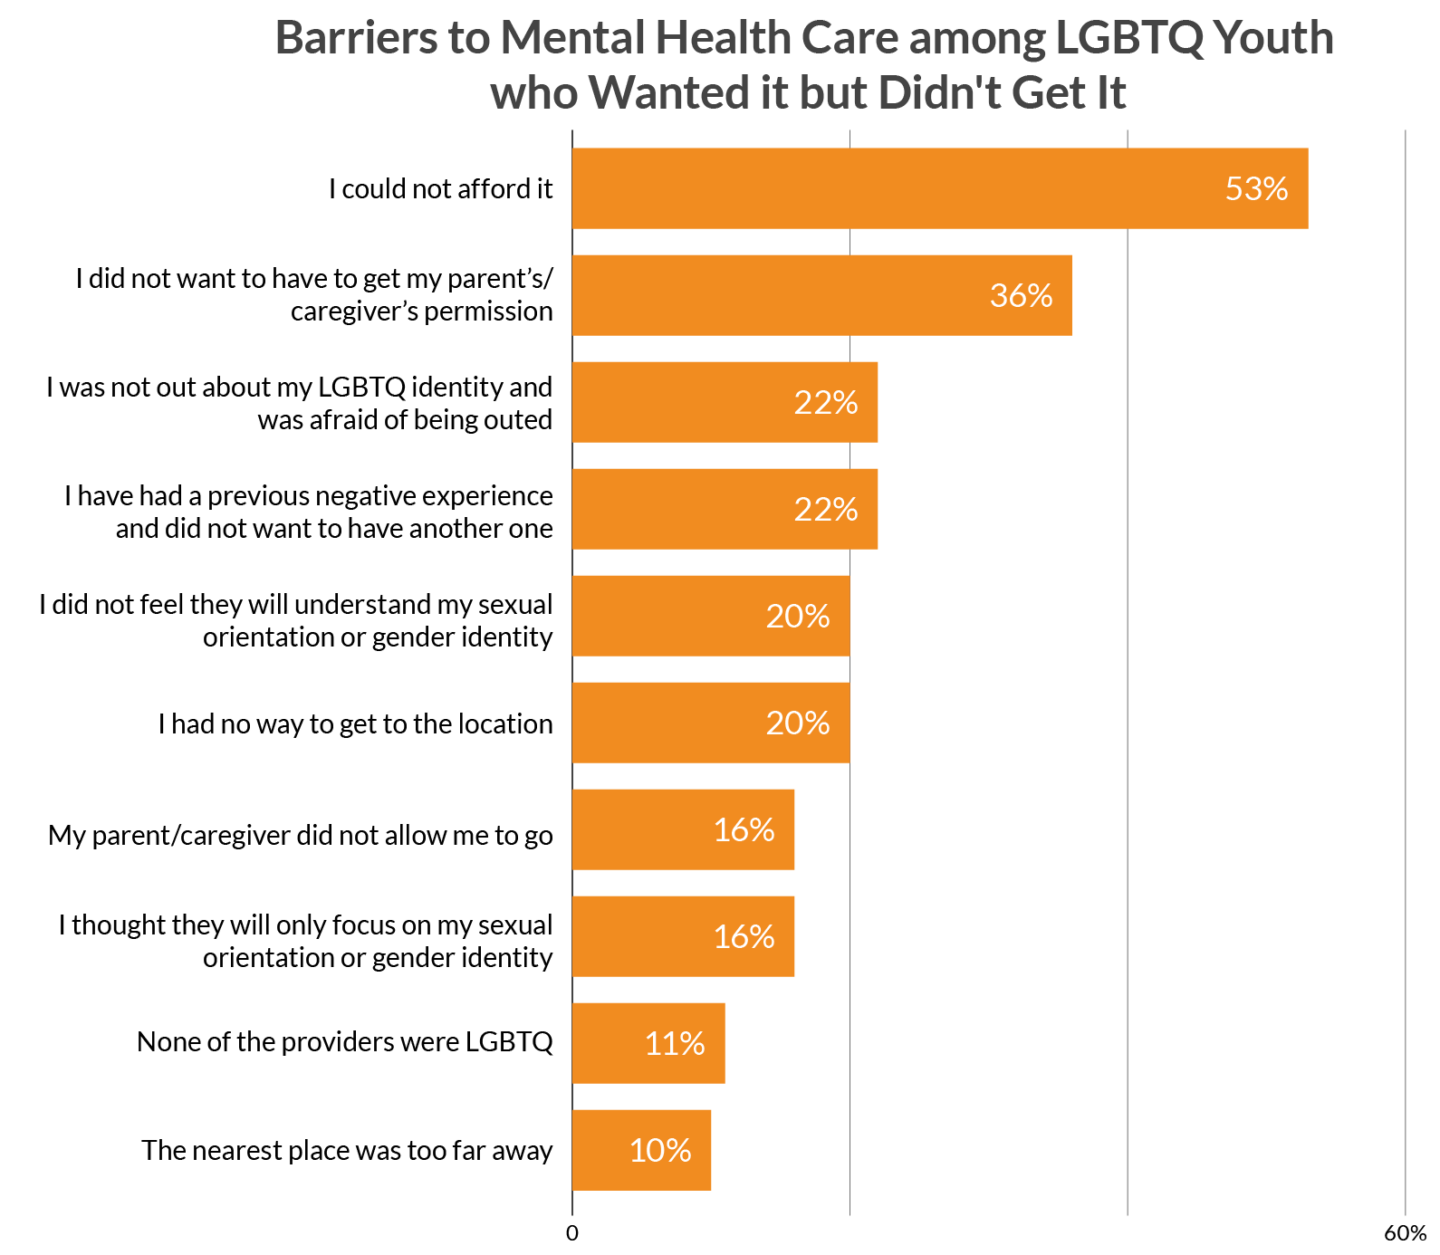 Barriers to Mental Health Care with LGBTQ Youth